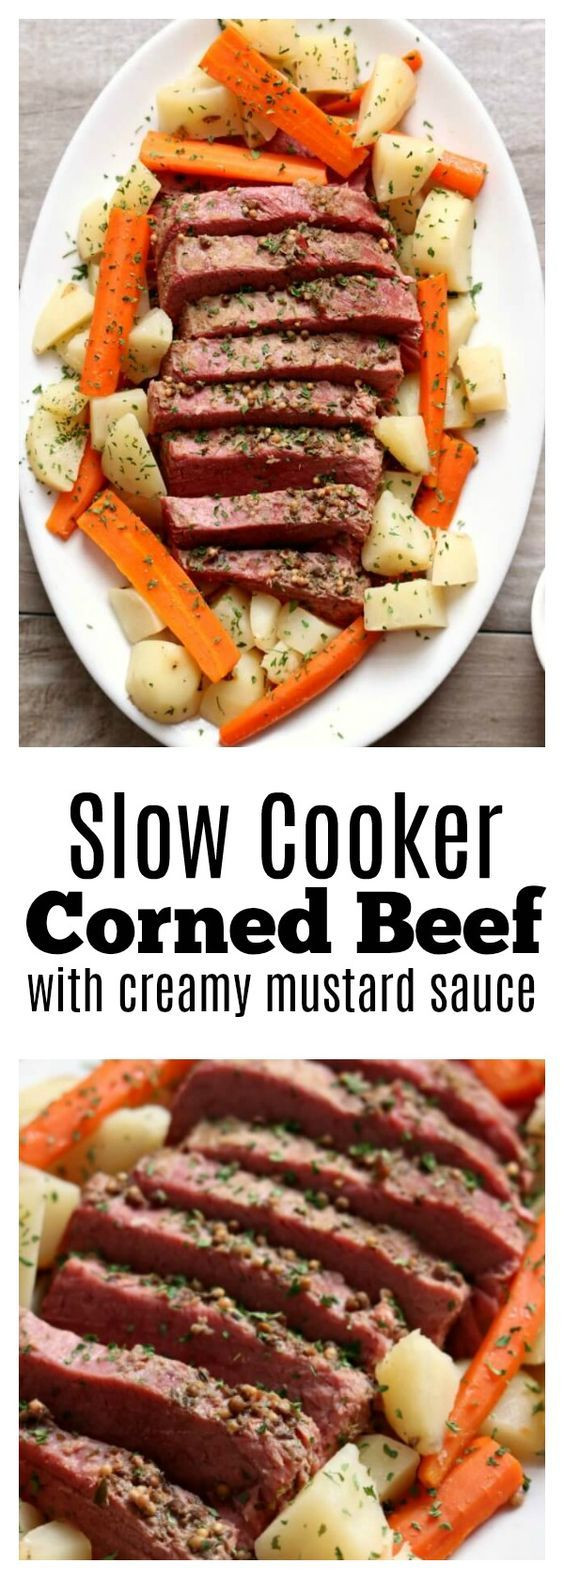 Corned Beef Recipes Slow Cooker Keto  SLOW COOKER CORNED BEEF DINNER WITH MUSTARD SAUCE low